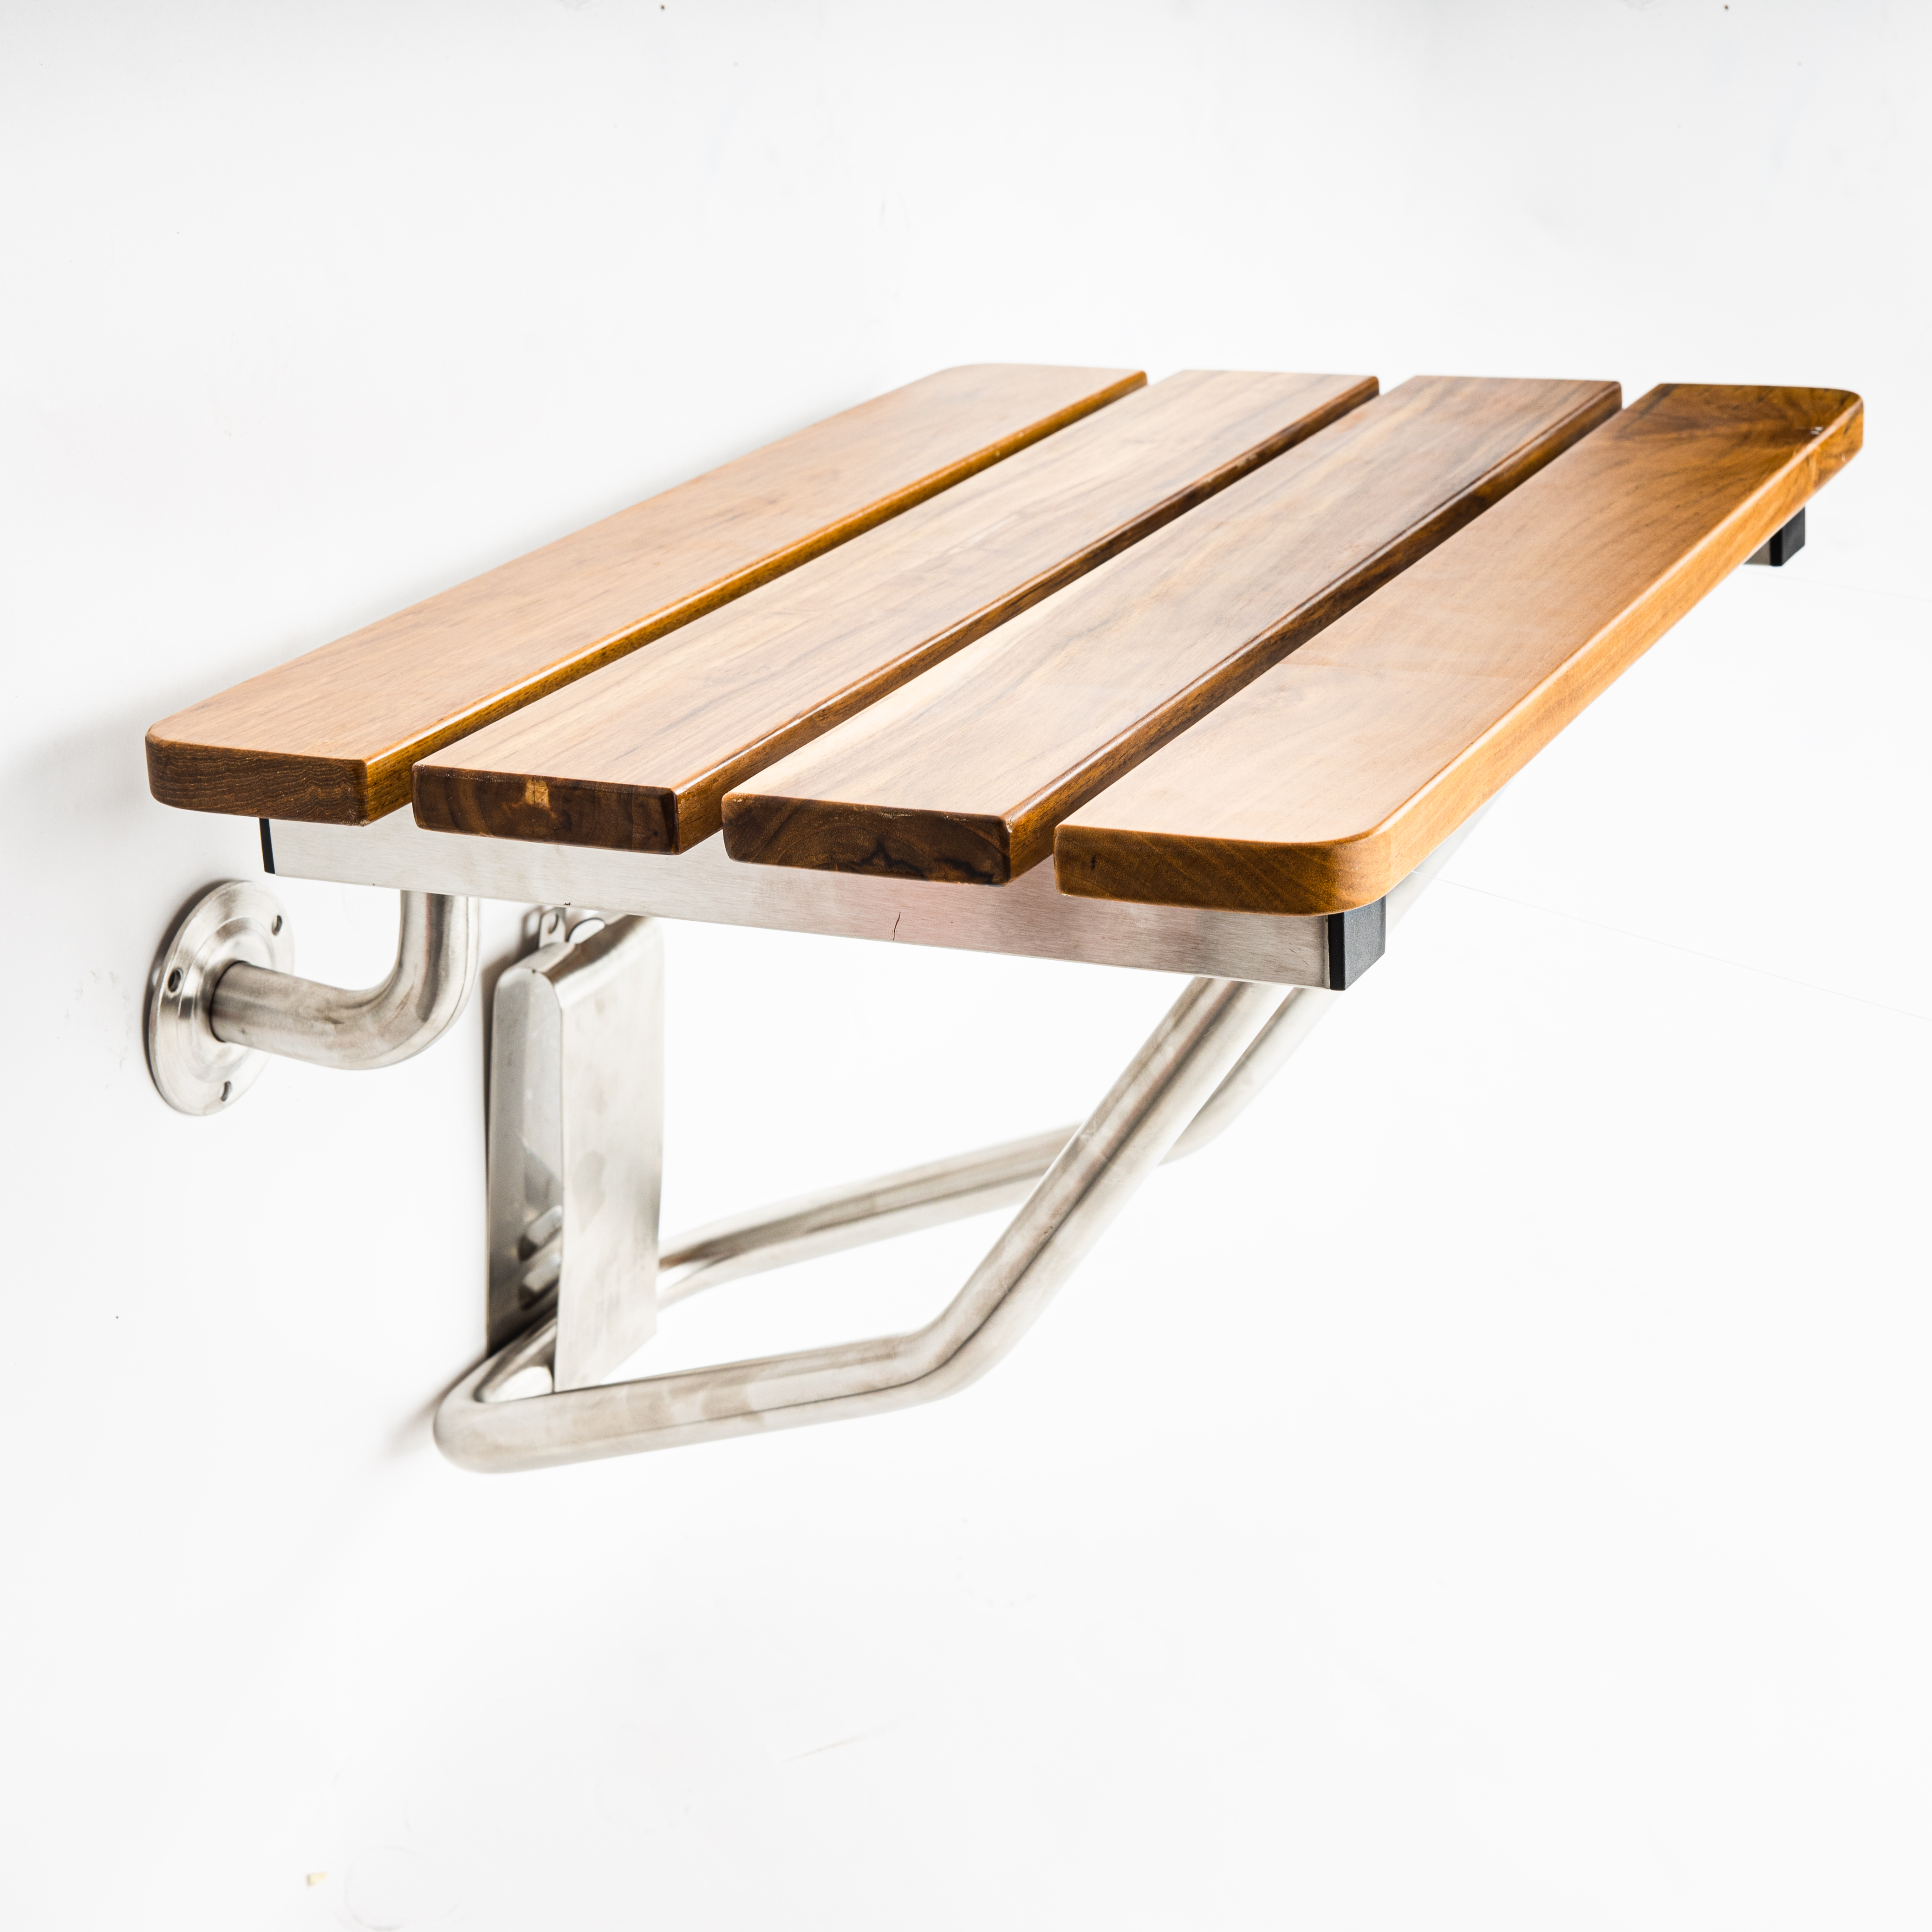 Seaport Shower Seat by GreatGrabz